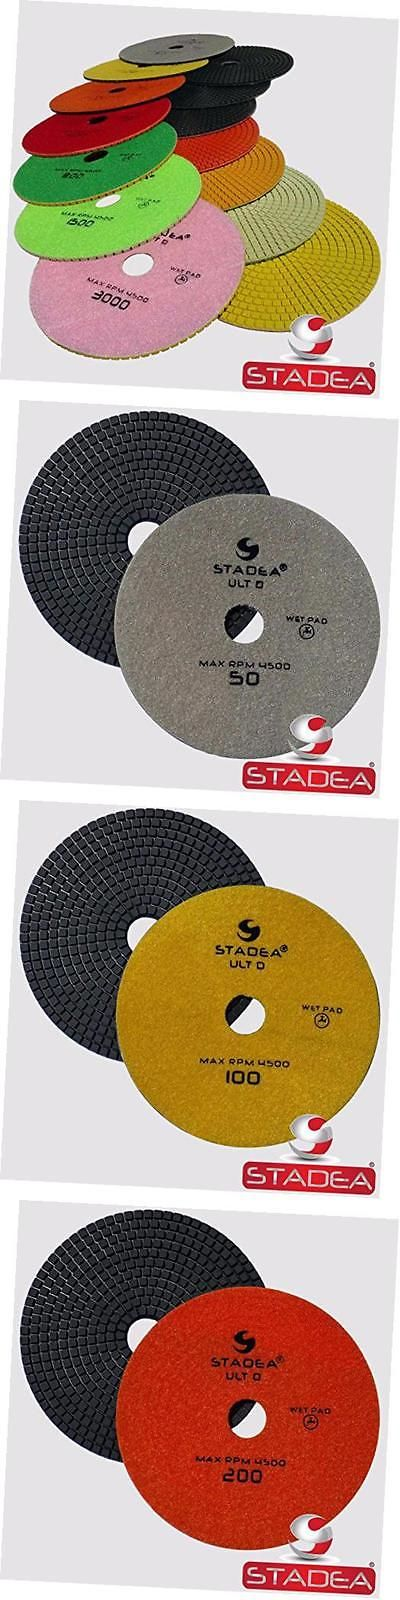 materials: Granite Polishing Pads 7 Diamond Pads For Granite Quartz Stone Polish -> BUY IT NOW ONLY: $41.69 on eBay!